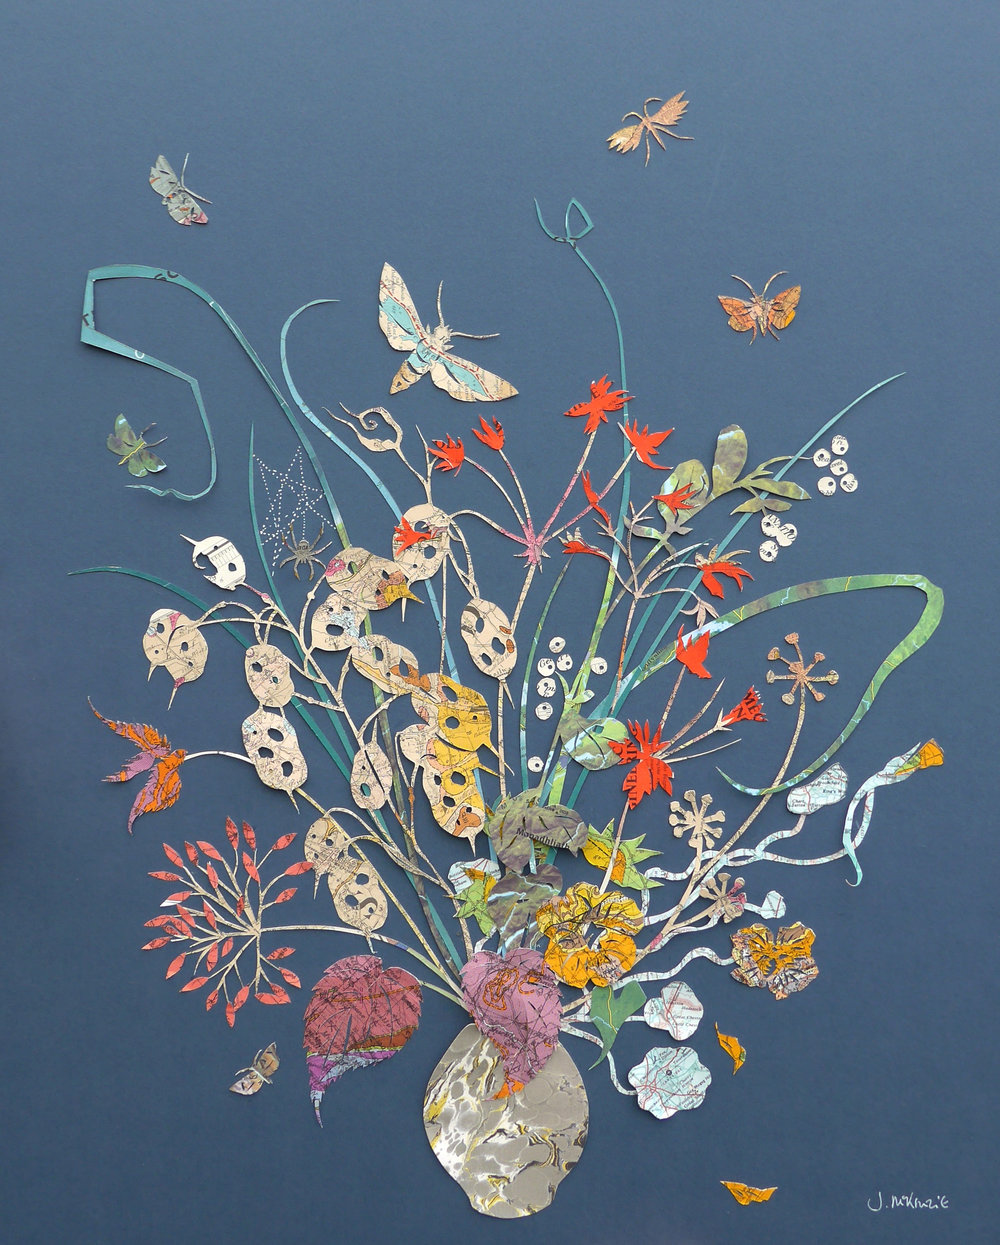 Julia MacKenzie  A Winter Garden   Papercut  £550 framed